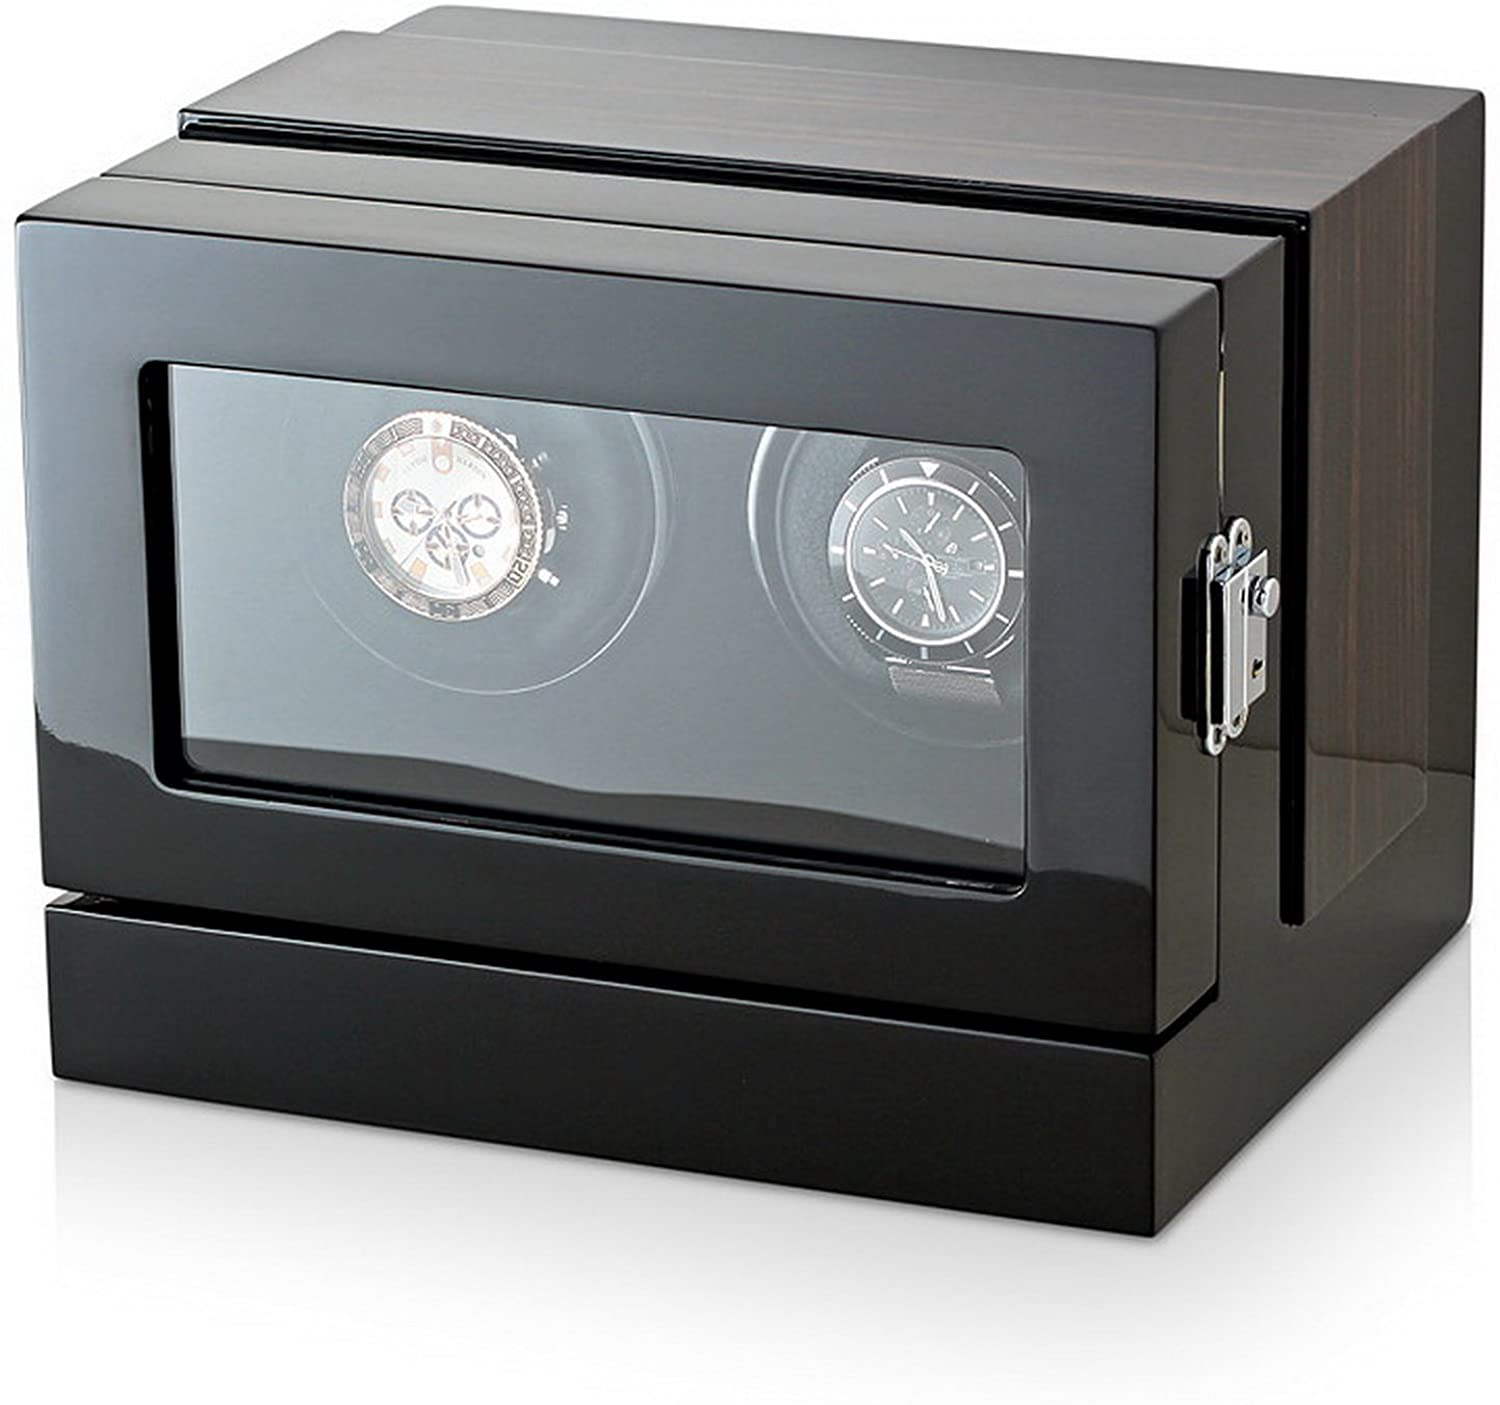 Double Watch Winder with Customisable Winding Mode and LED Backlight